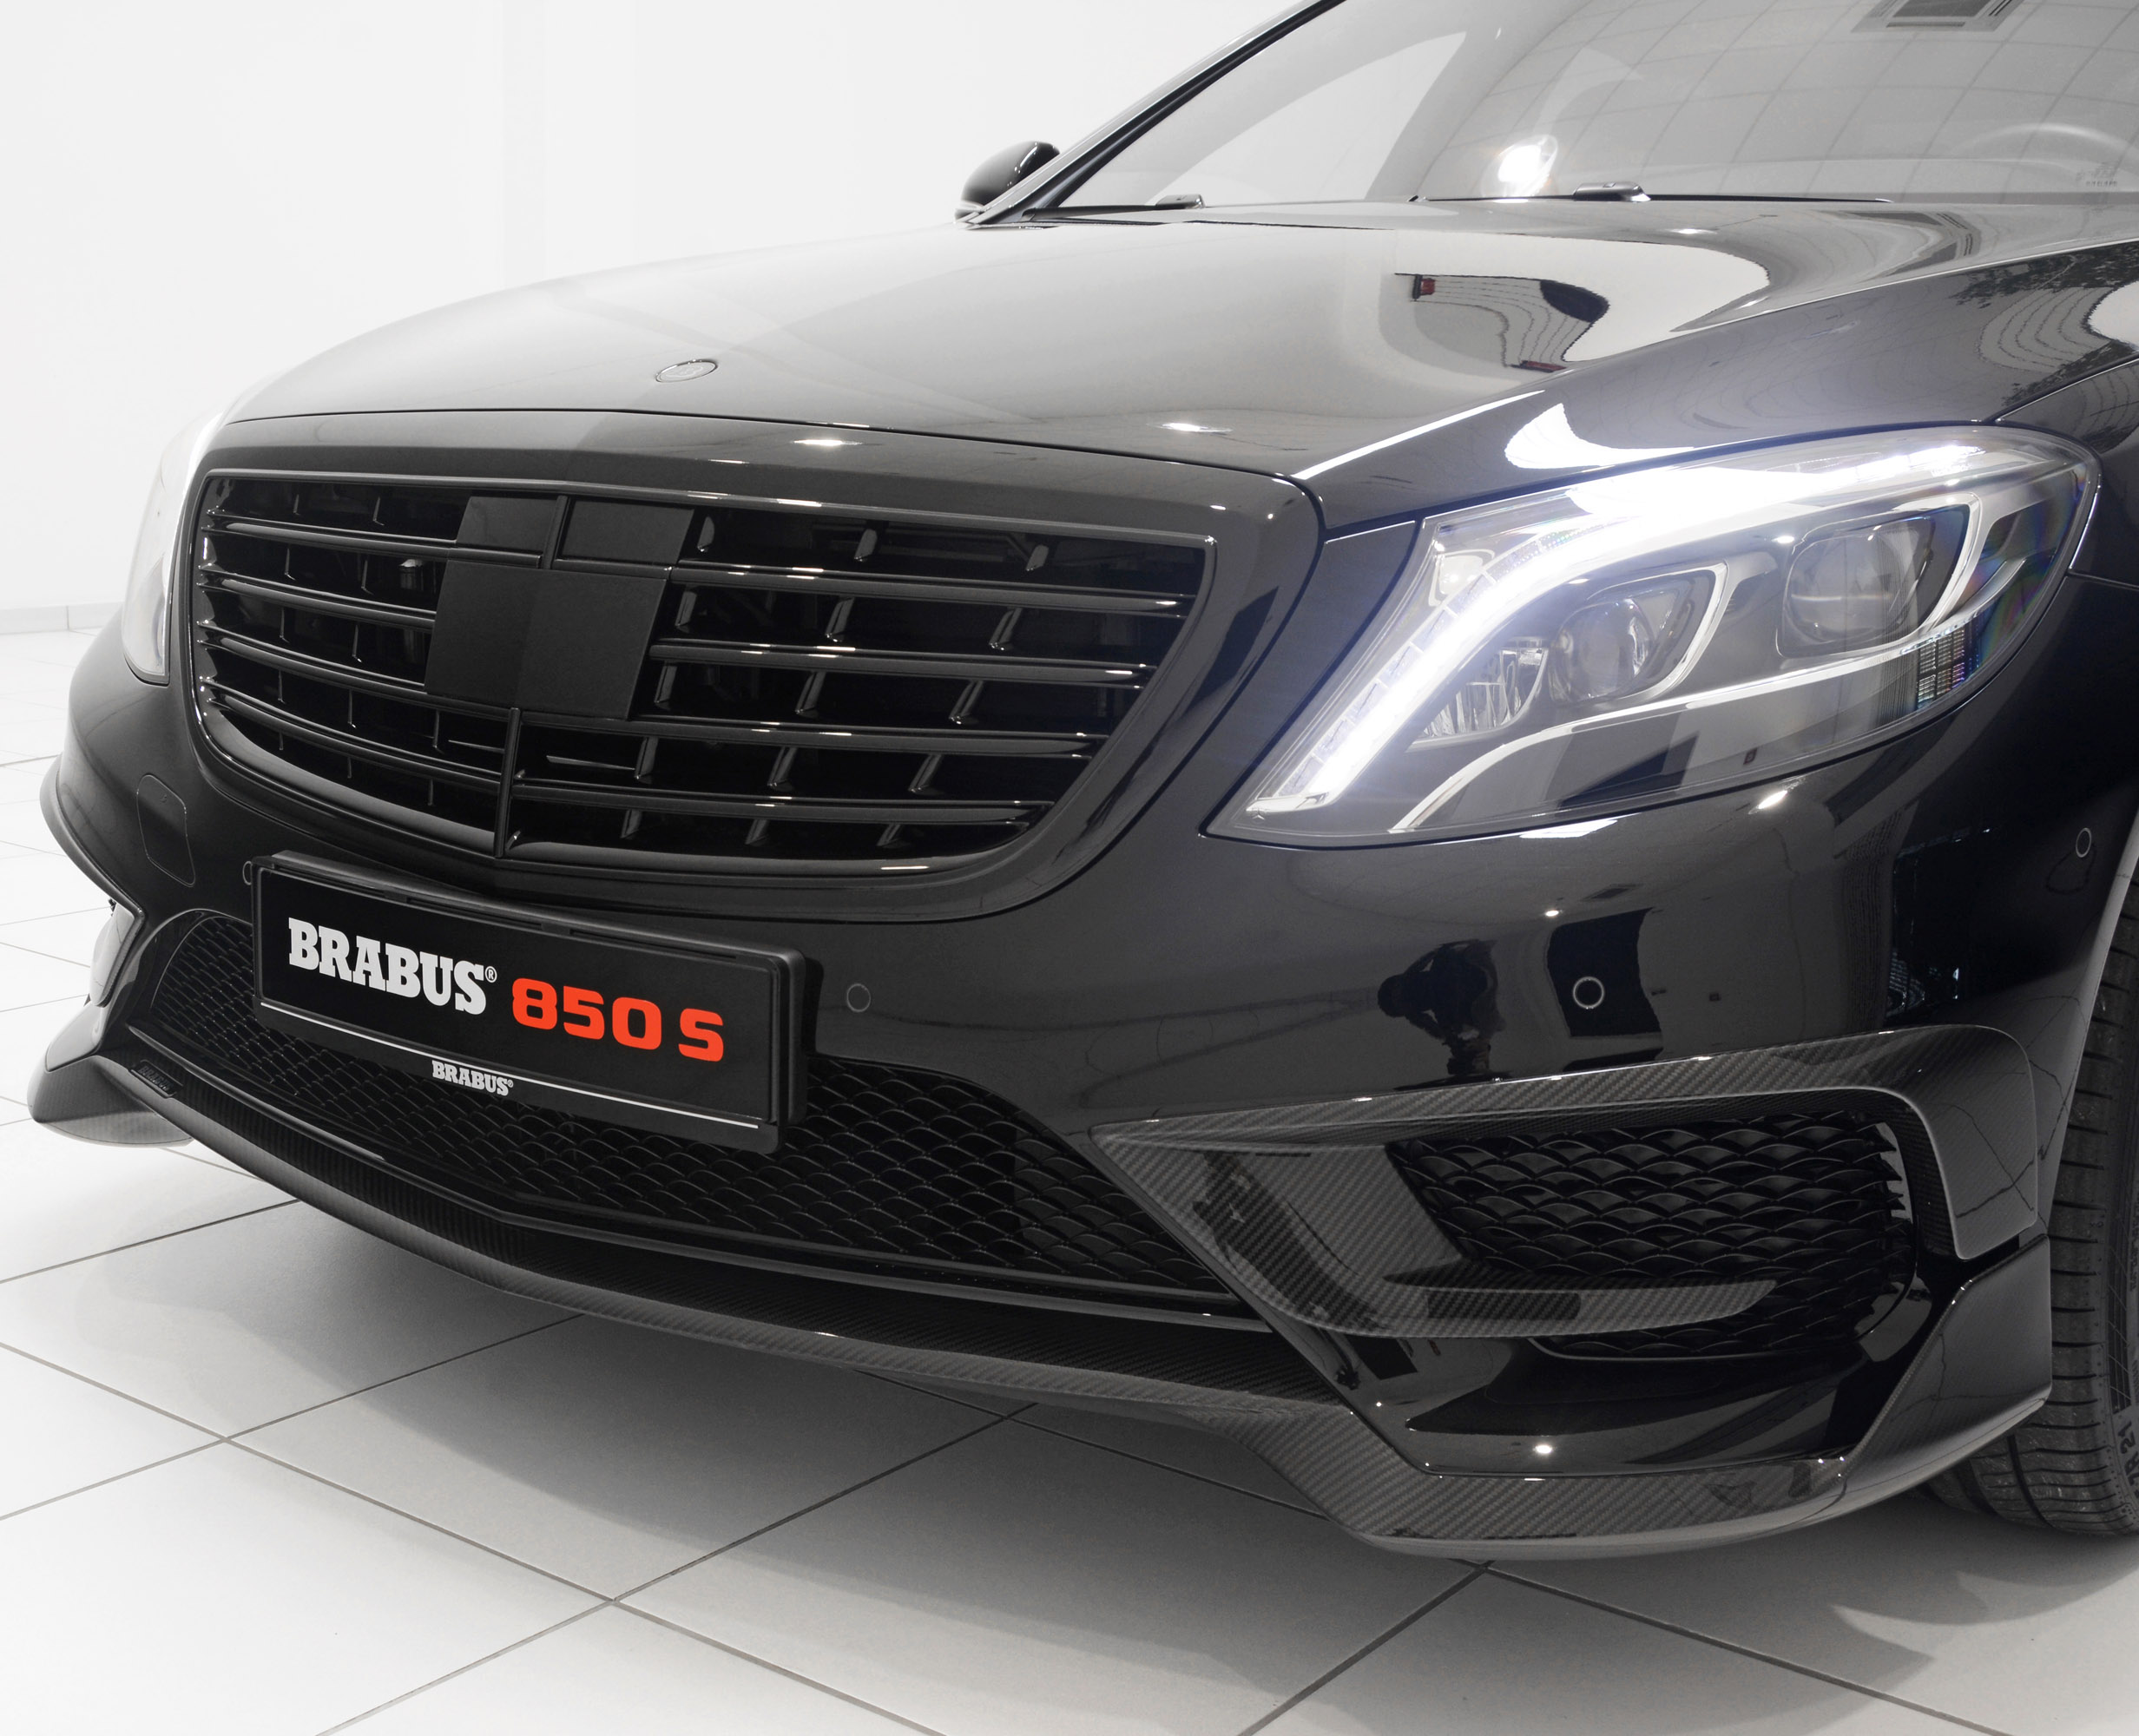 Brabus 850 S Based On 2014 Mercedes Benz S 63 Amg